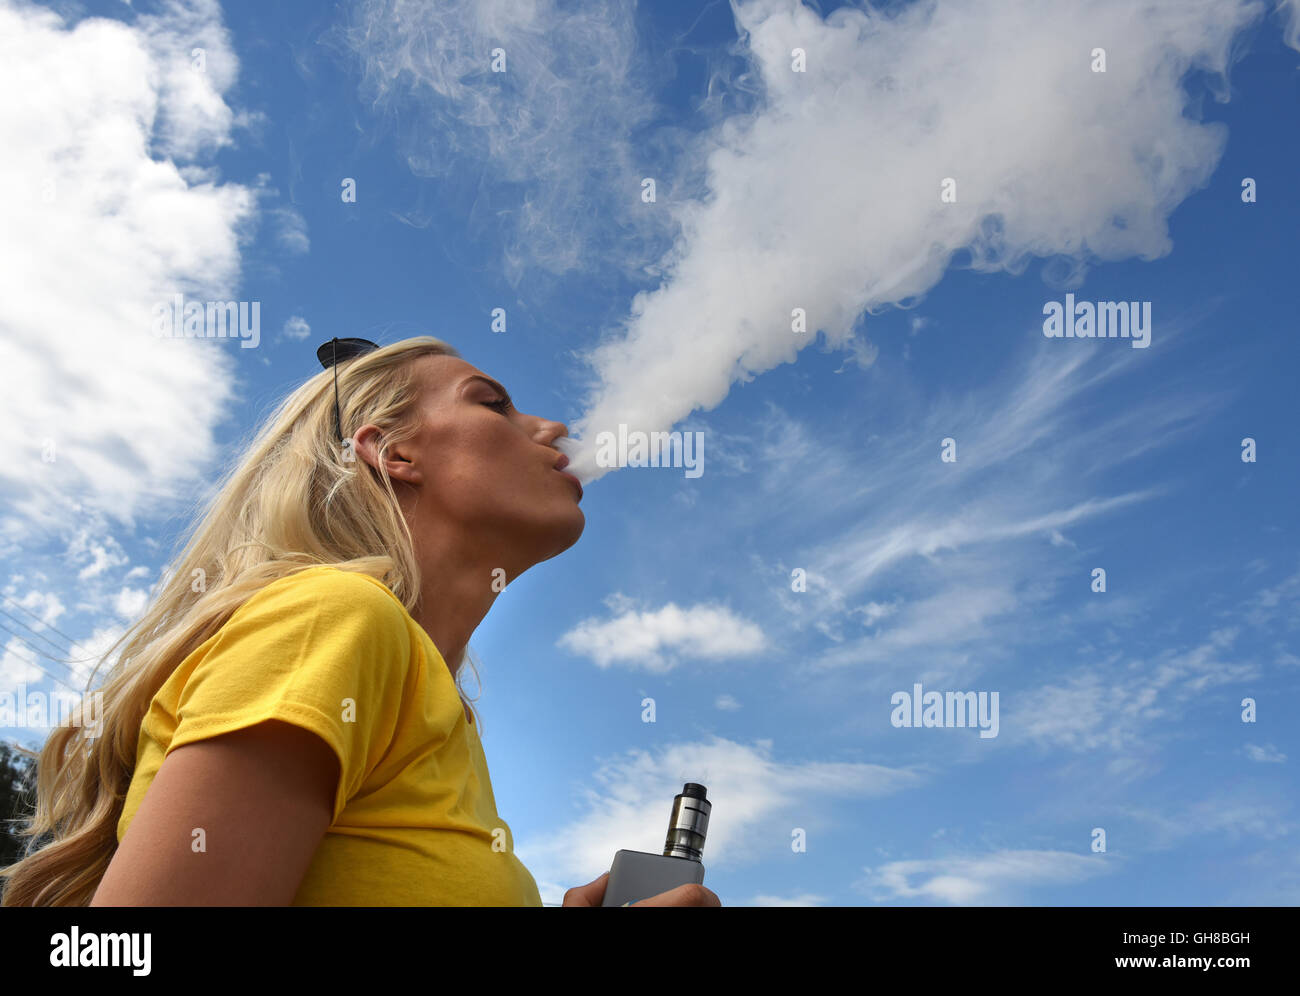 Vapefest the festival for Vaping enthusiasts at Shrewsbury Uk August 6th 2016 - Stock Image